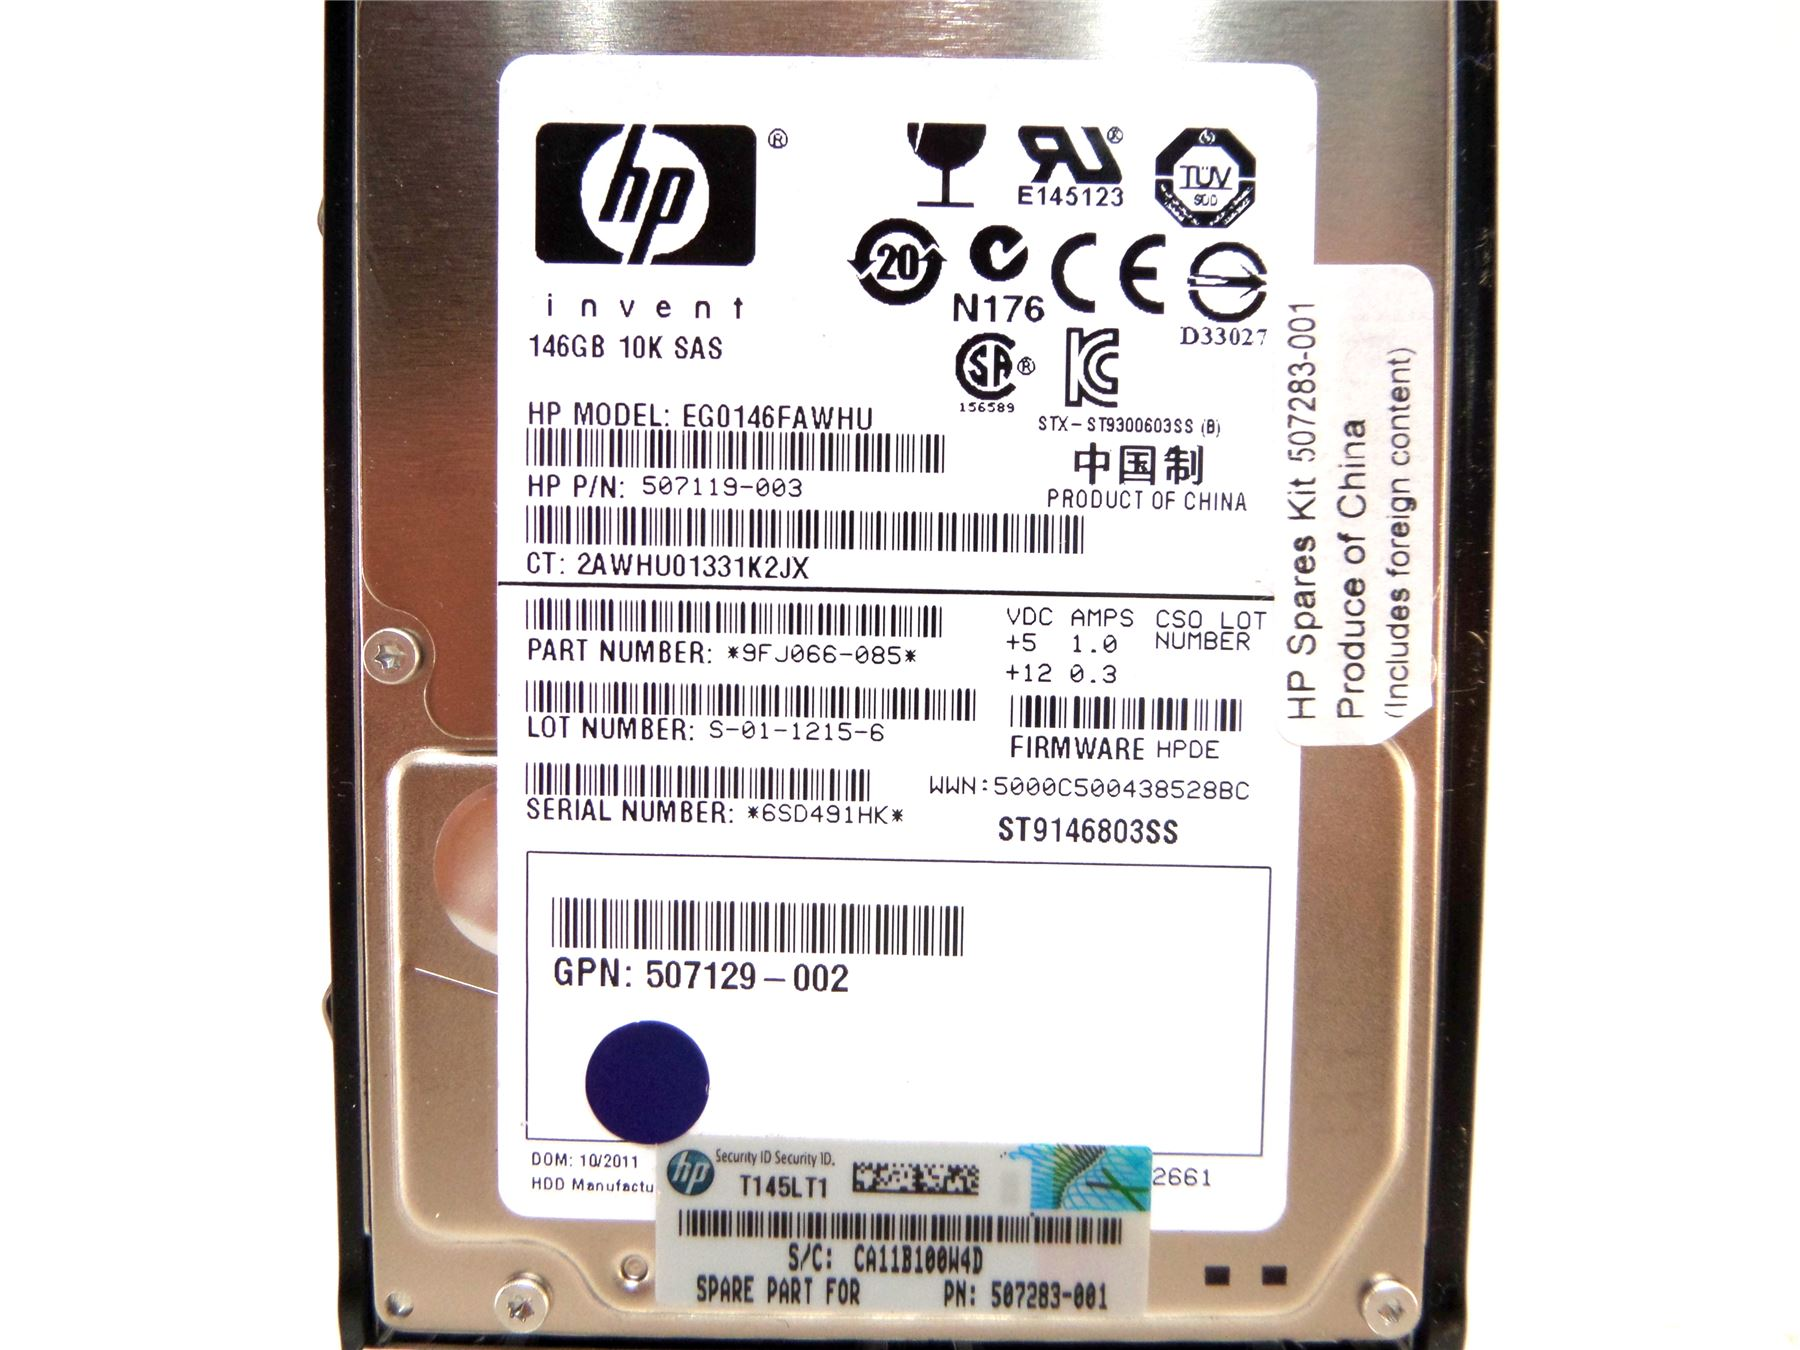 Sas Bad 24 Details About Hp Eg0146fawhu 146gb 10k 2 5